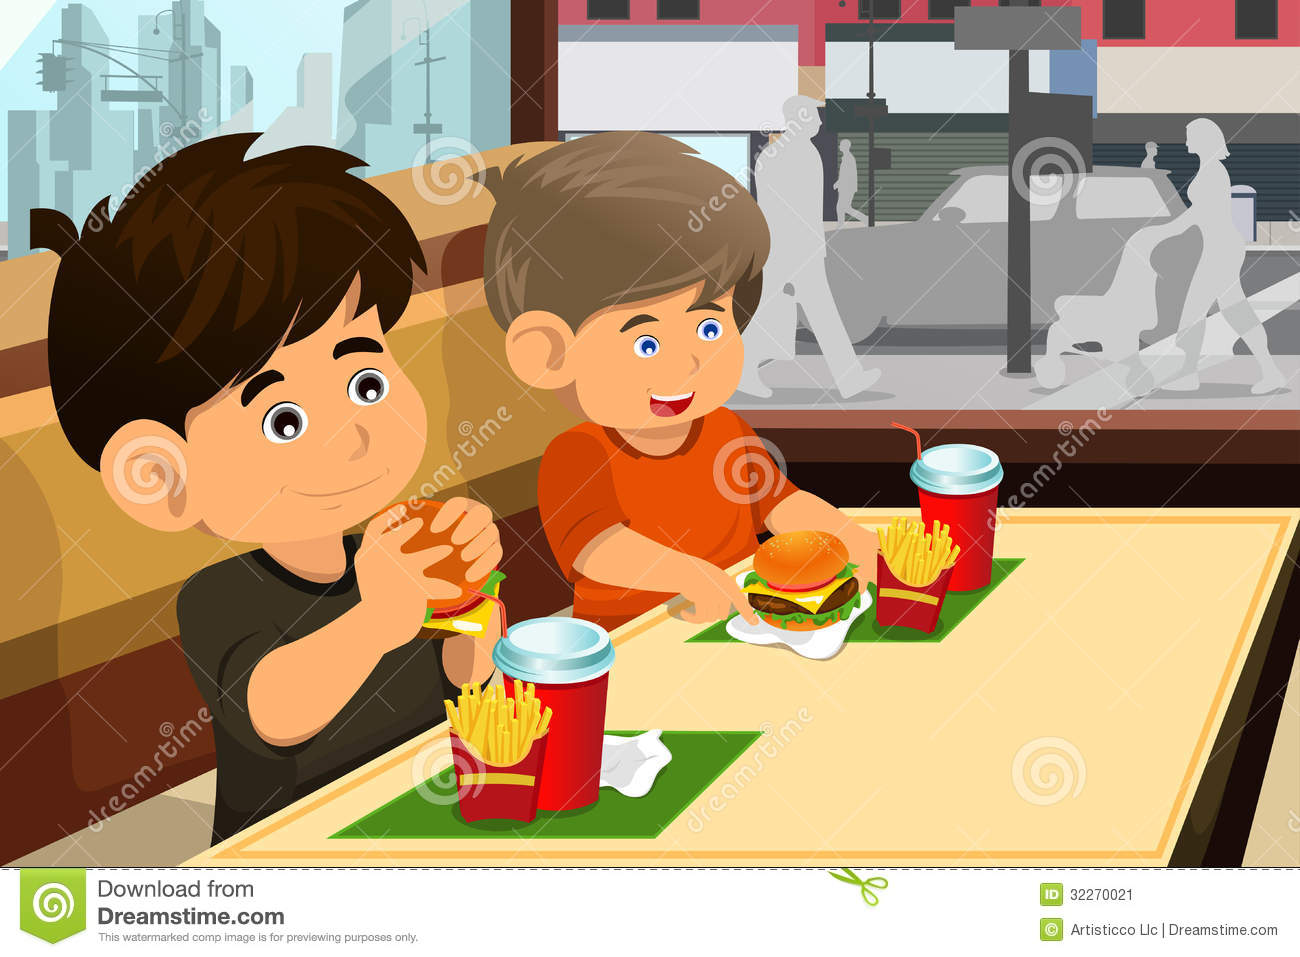 Of Happy Kids Eating A Hamburger And Fries In A Fast Food Restaurant